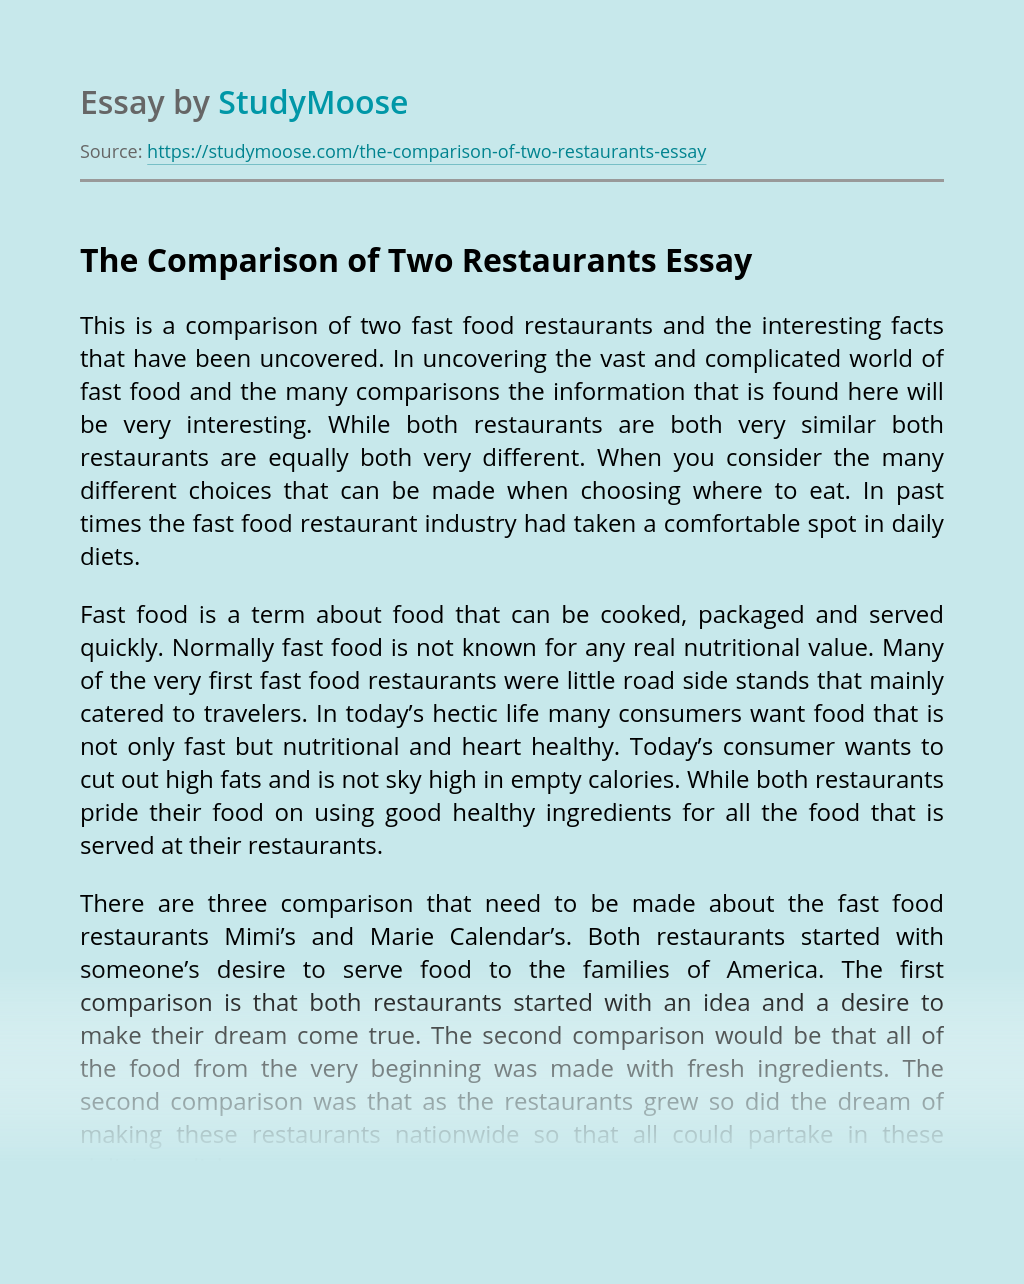 The Comparison of Two Restaurants